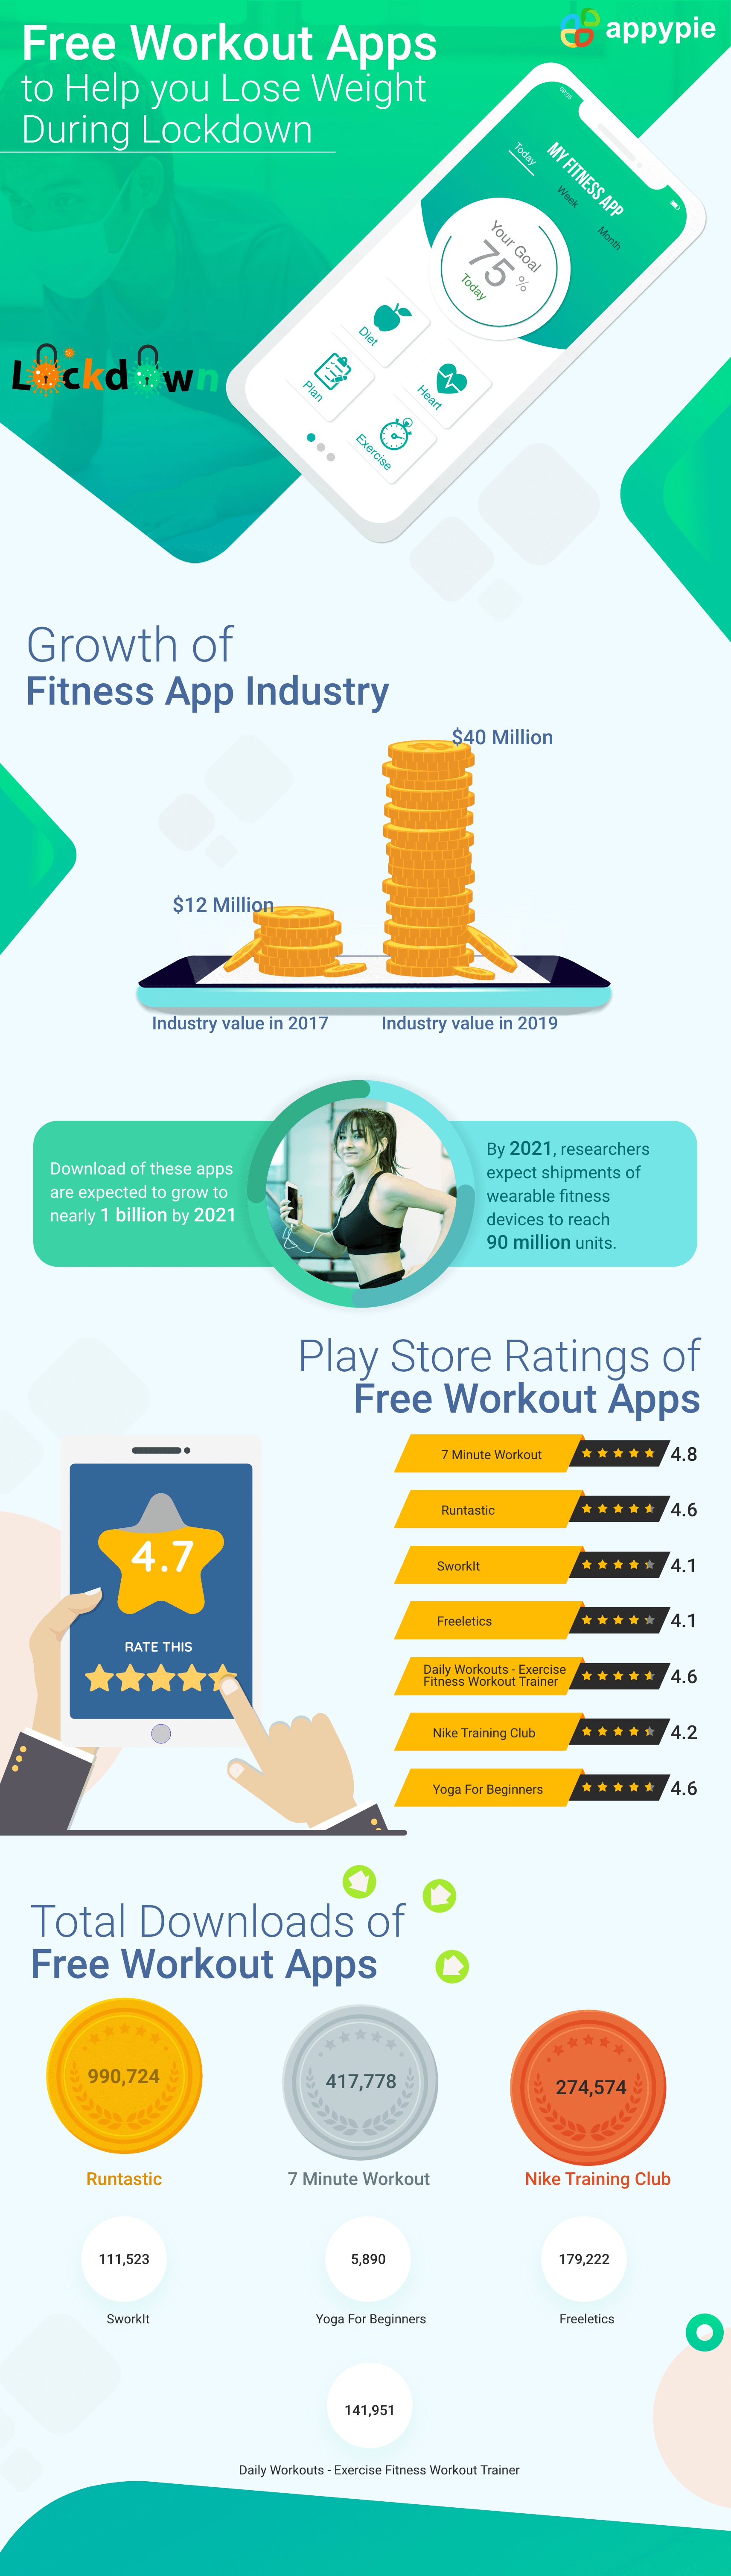 7 Free Apps to Help You Lose Weight When Gyms are Closed